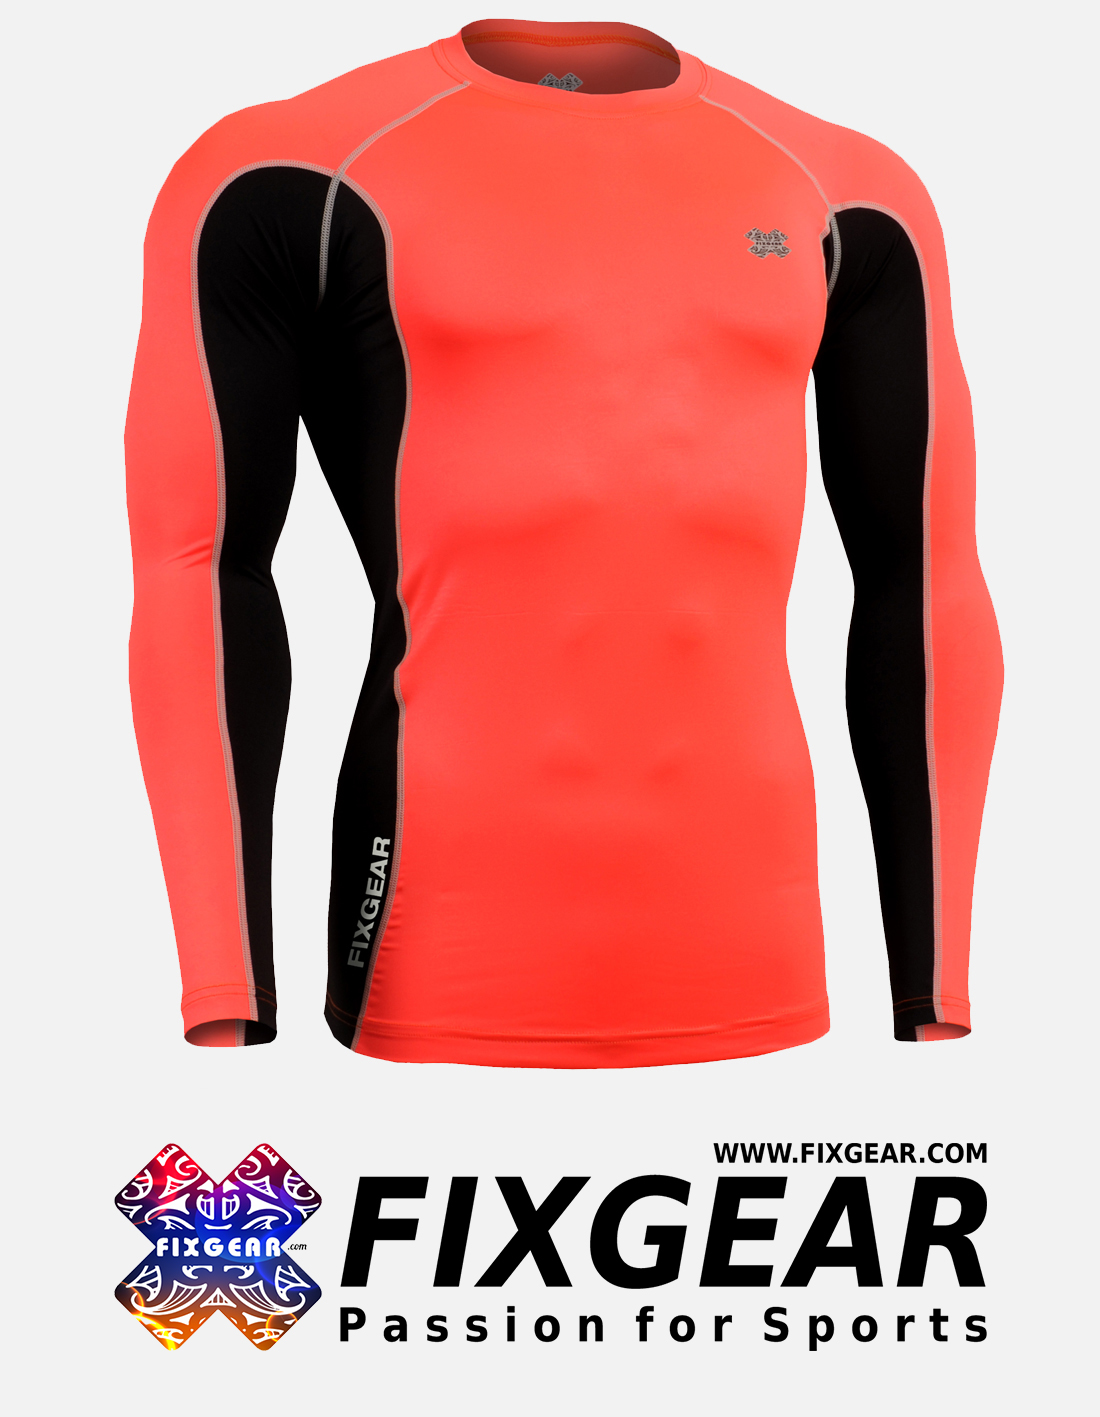 FIXGEAR FCTR-BPL Skin-tight Compression Base Layer Shirt